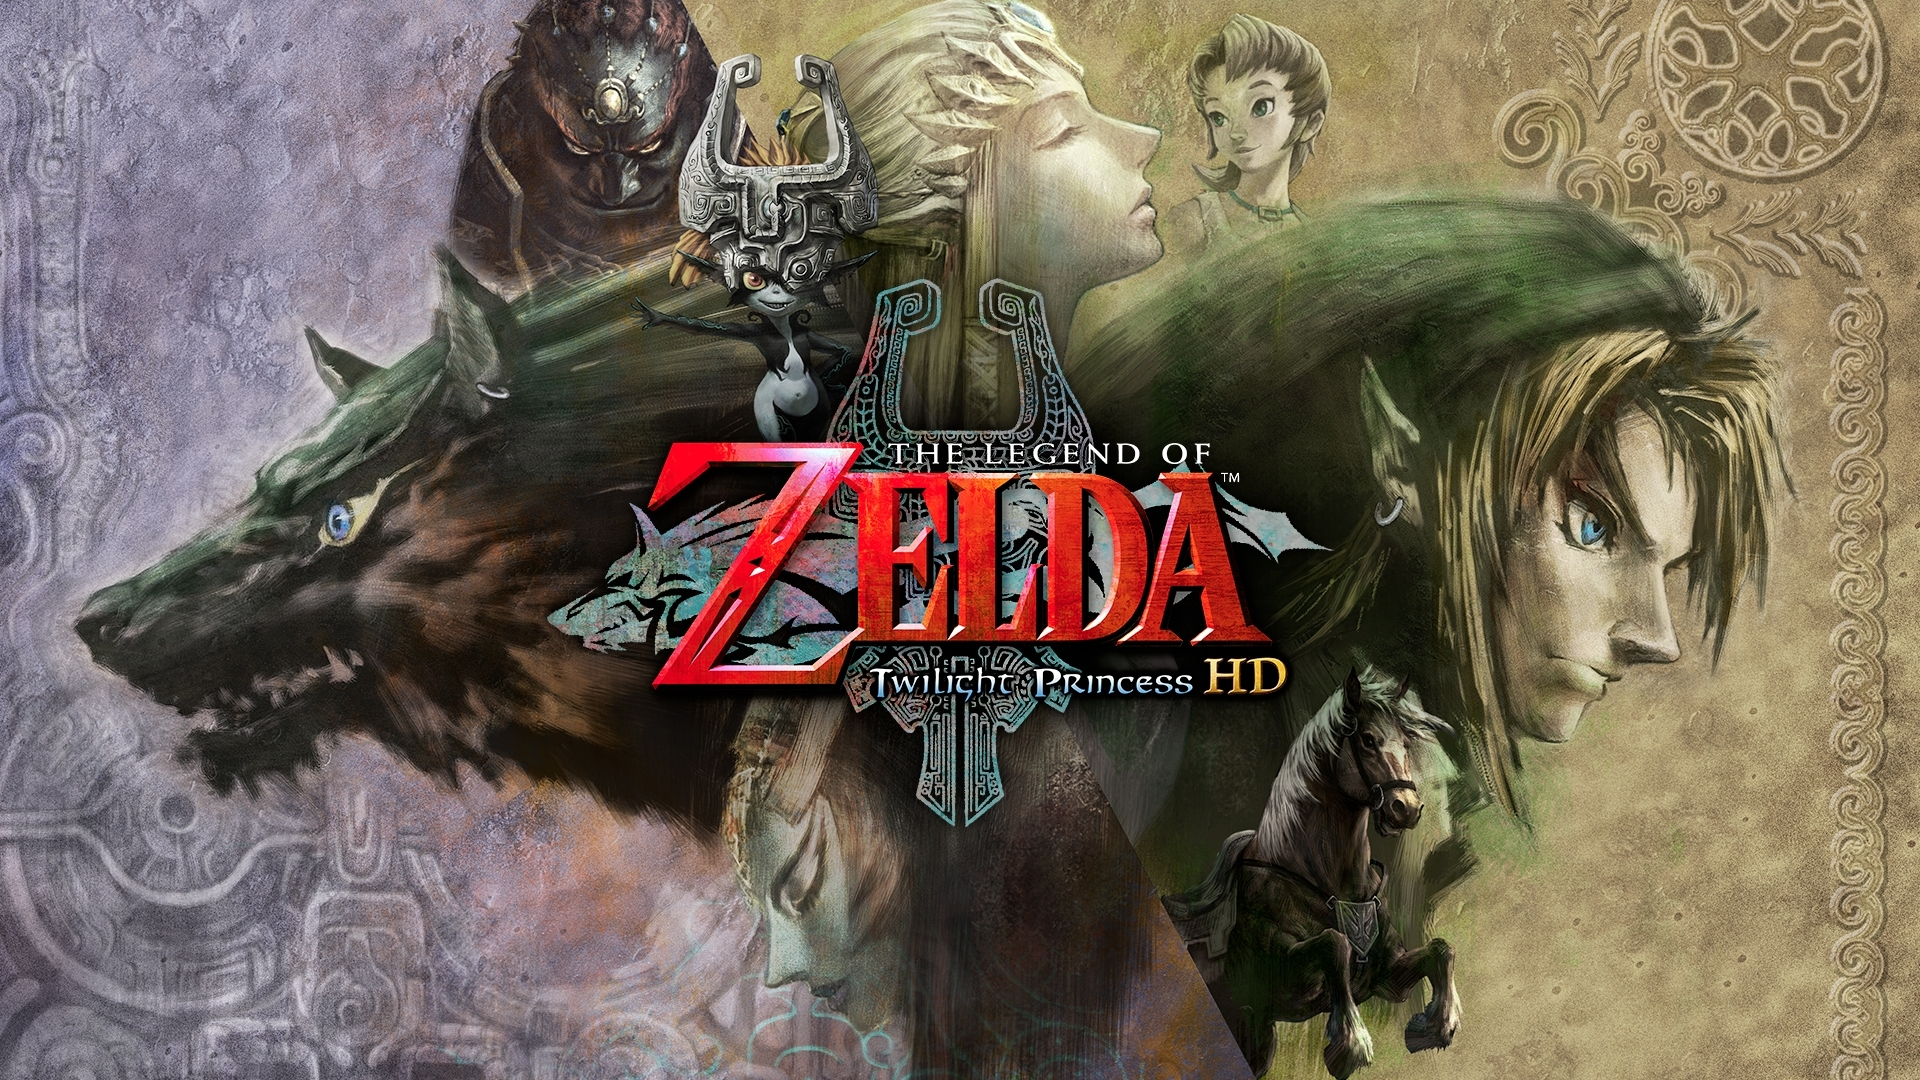 the legend of zelda: twilight princess hd review - bark at the moon